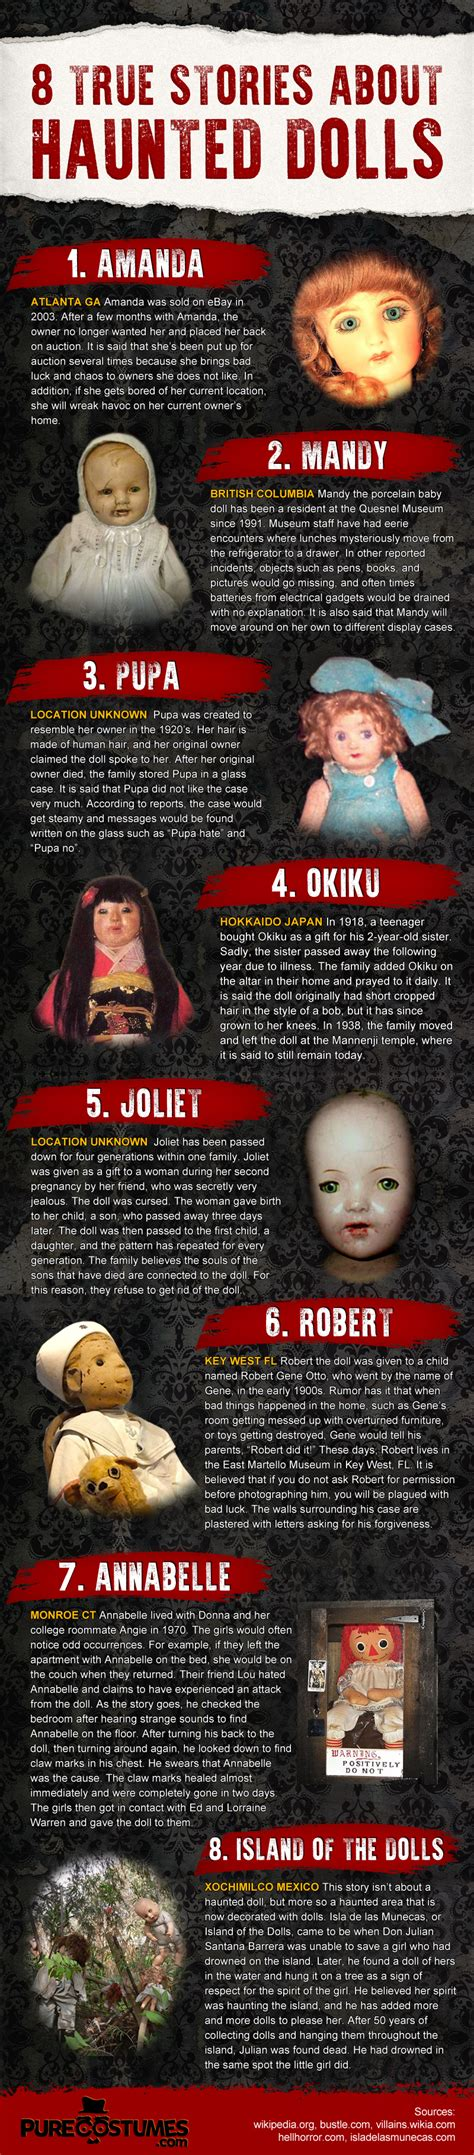 haunted doll in 8 true stories about haunted dolls costumes